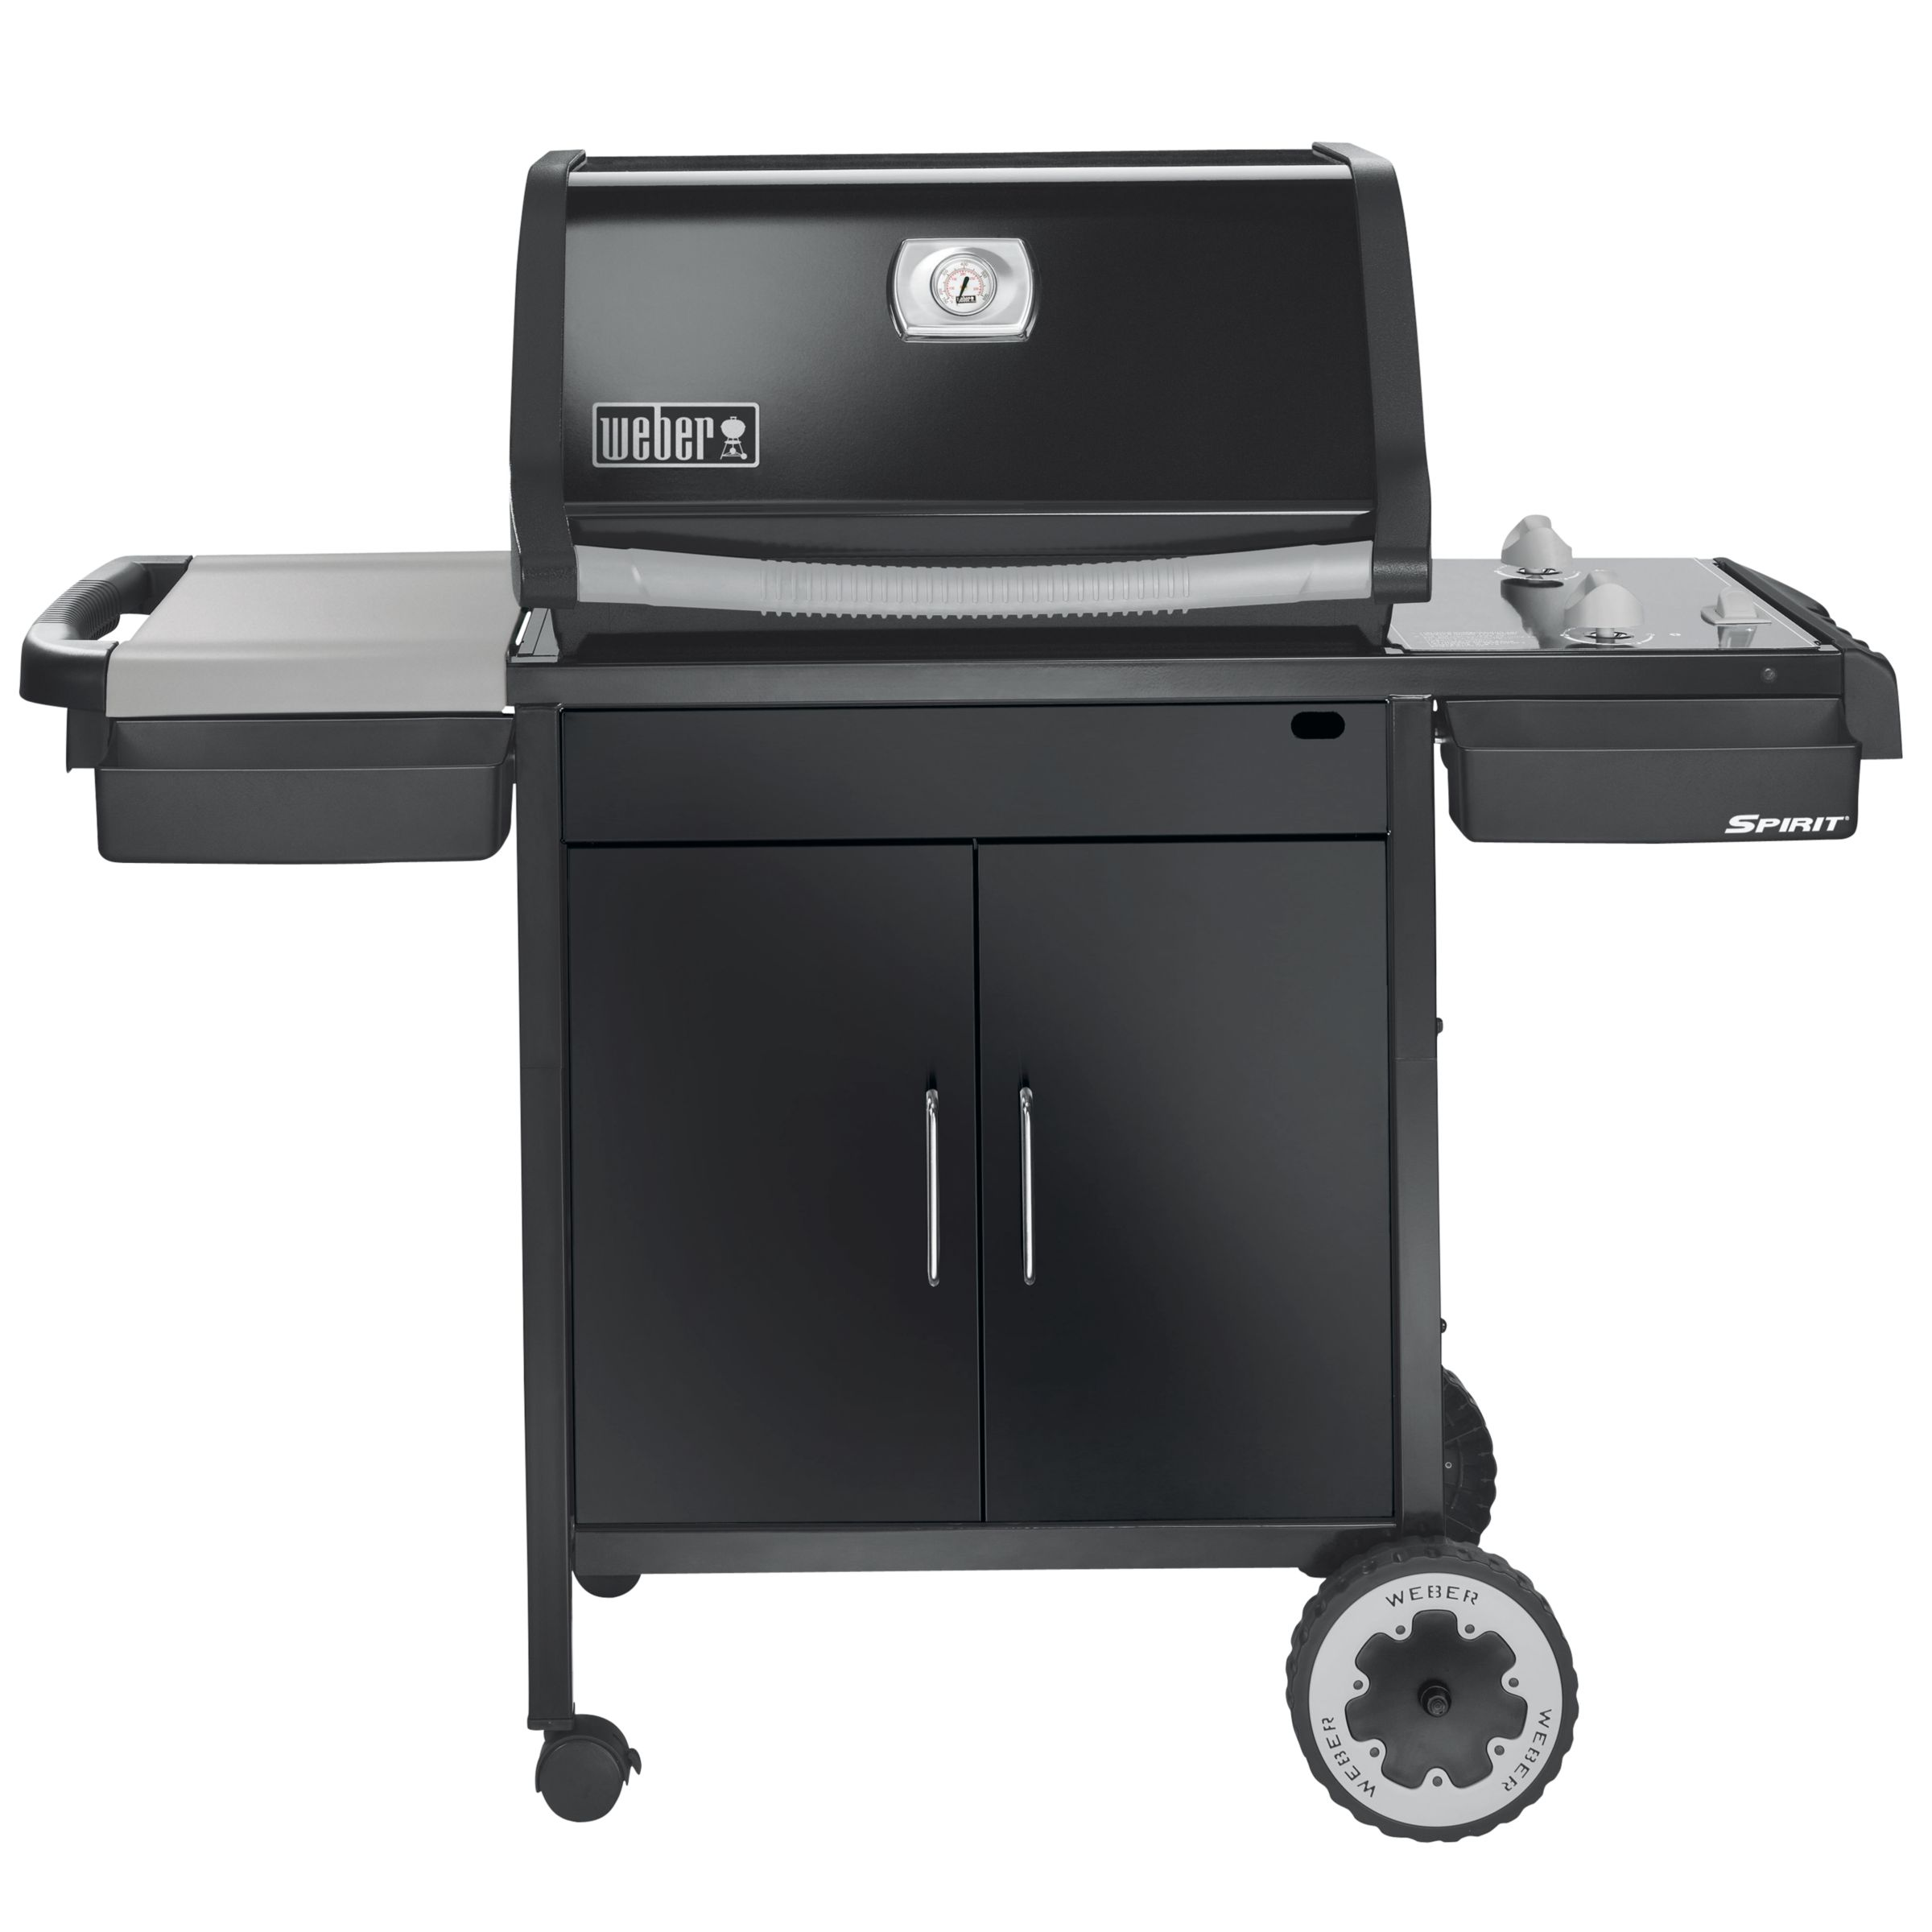 Weber Spirit Classic E210 Gas Barbecue with Cover